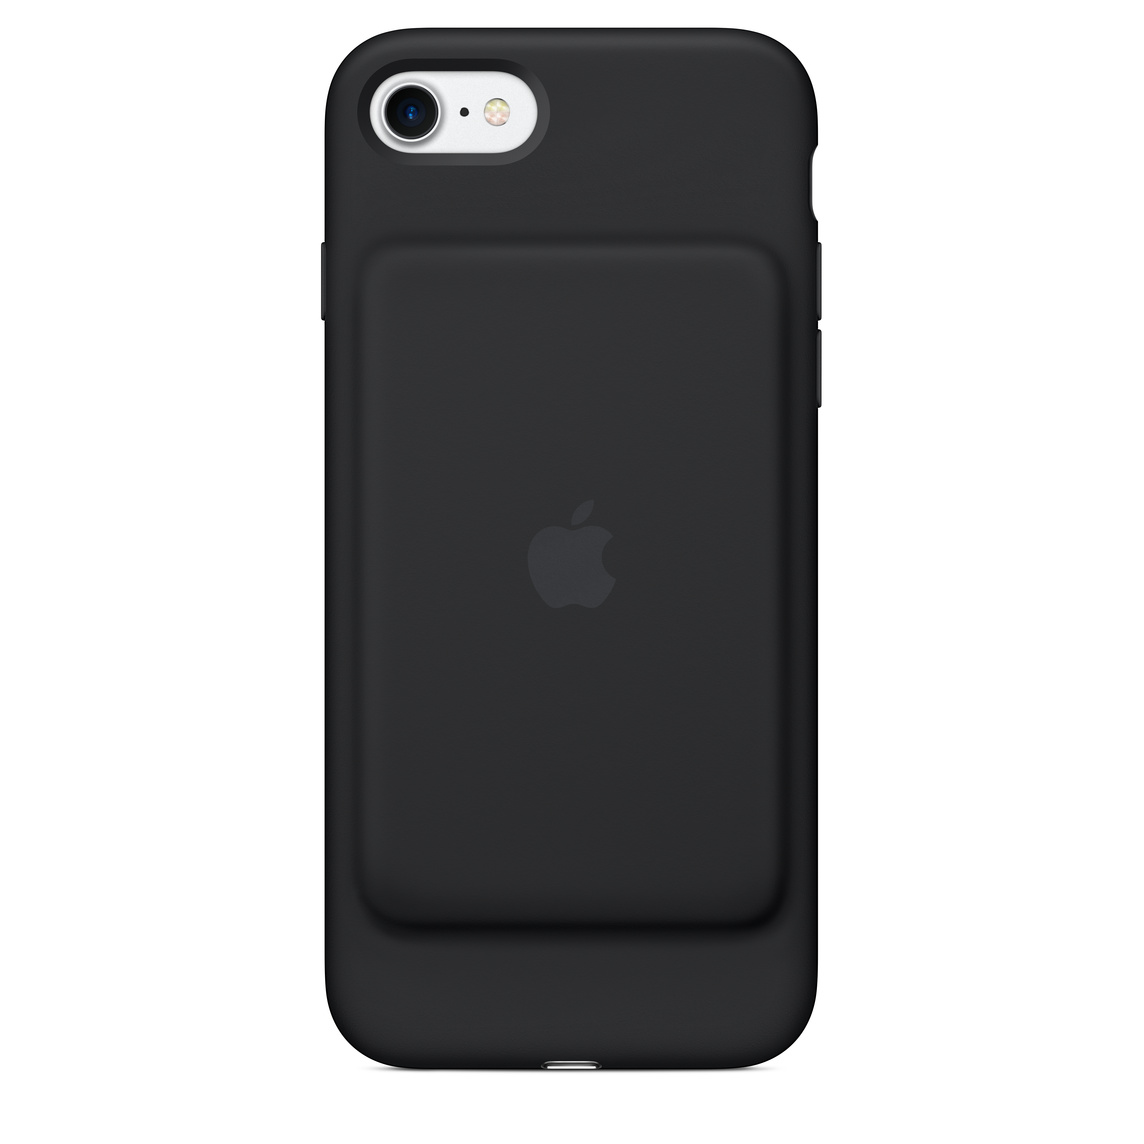 the best attitude 27520 ee898 iPhone 7 Smart Battery Case - Black